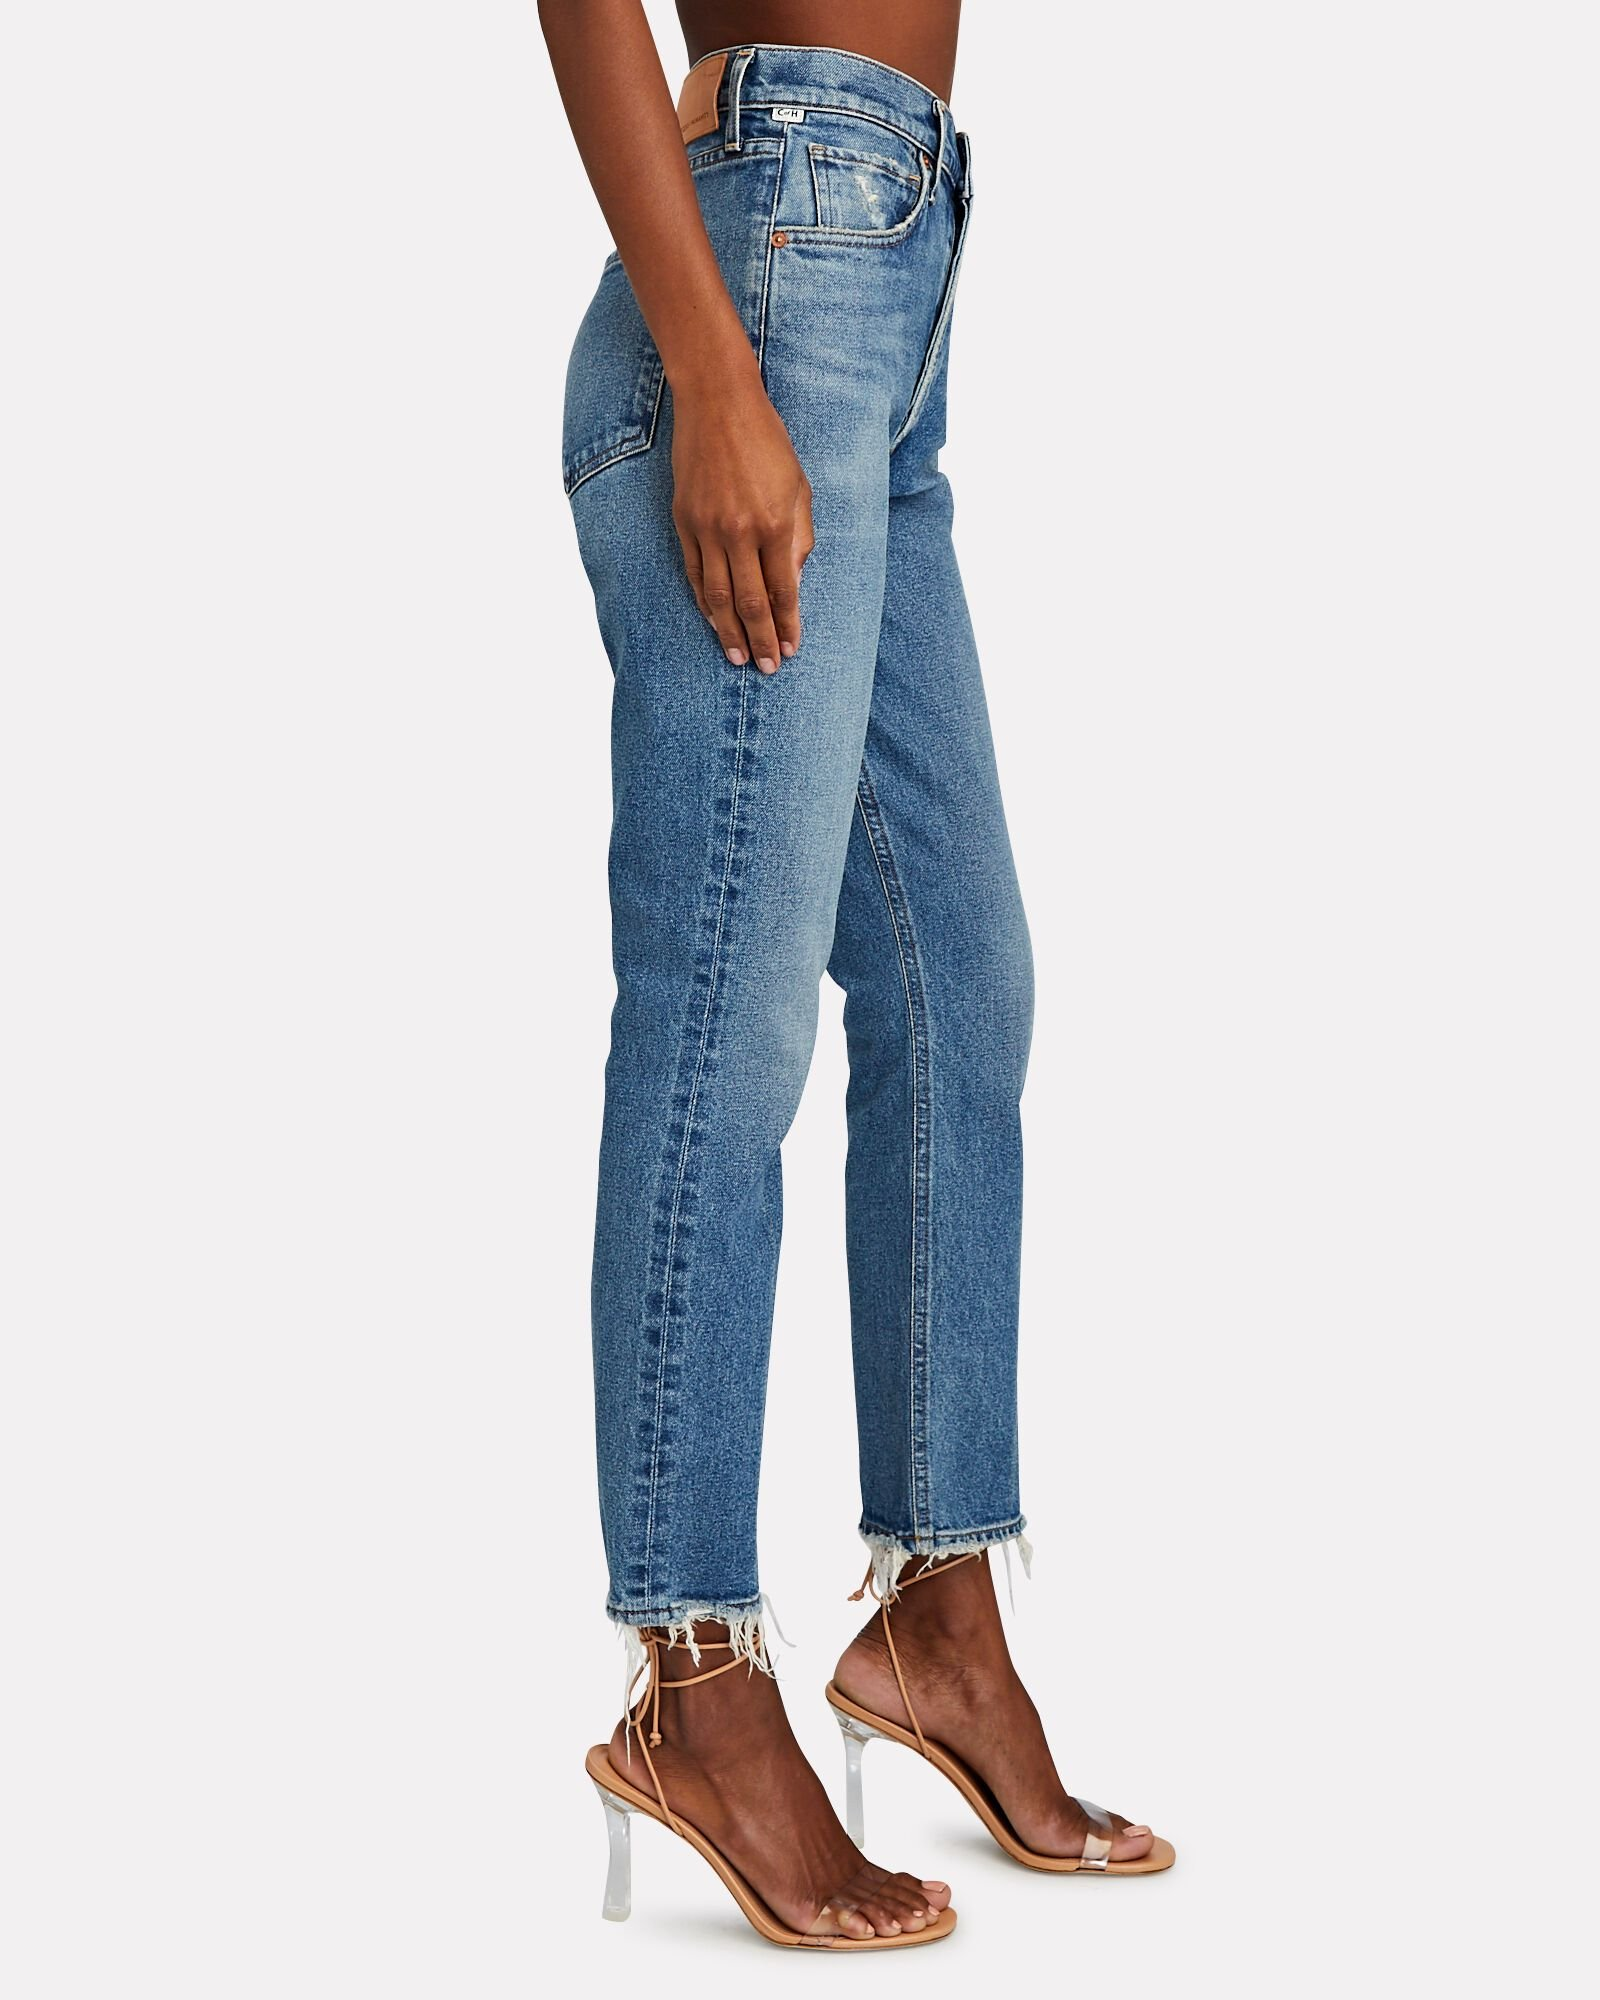 Jolene High-Rise Straight Jeans, DIMPLE, hi-res